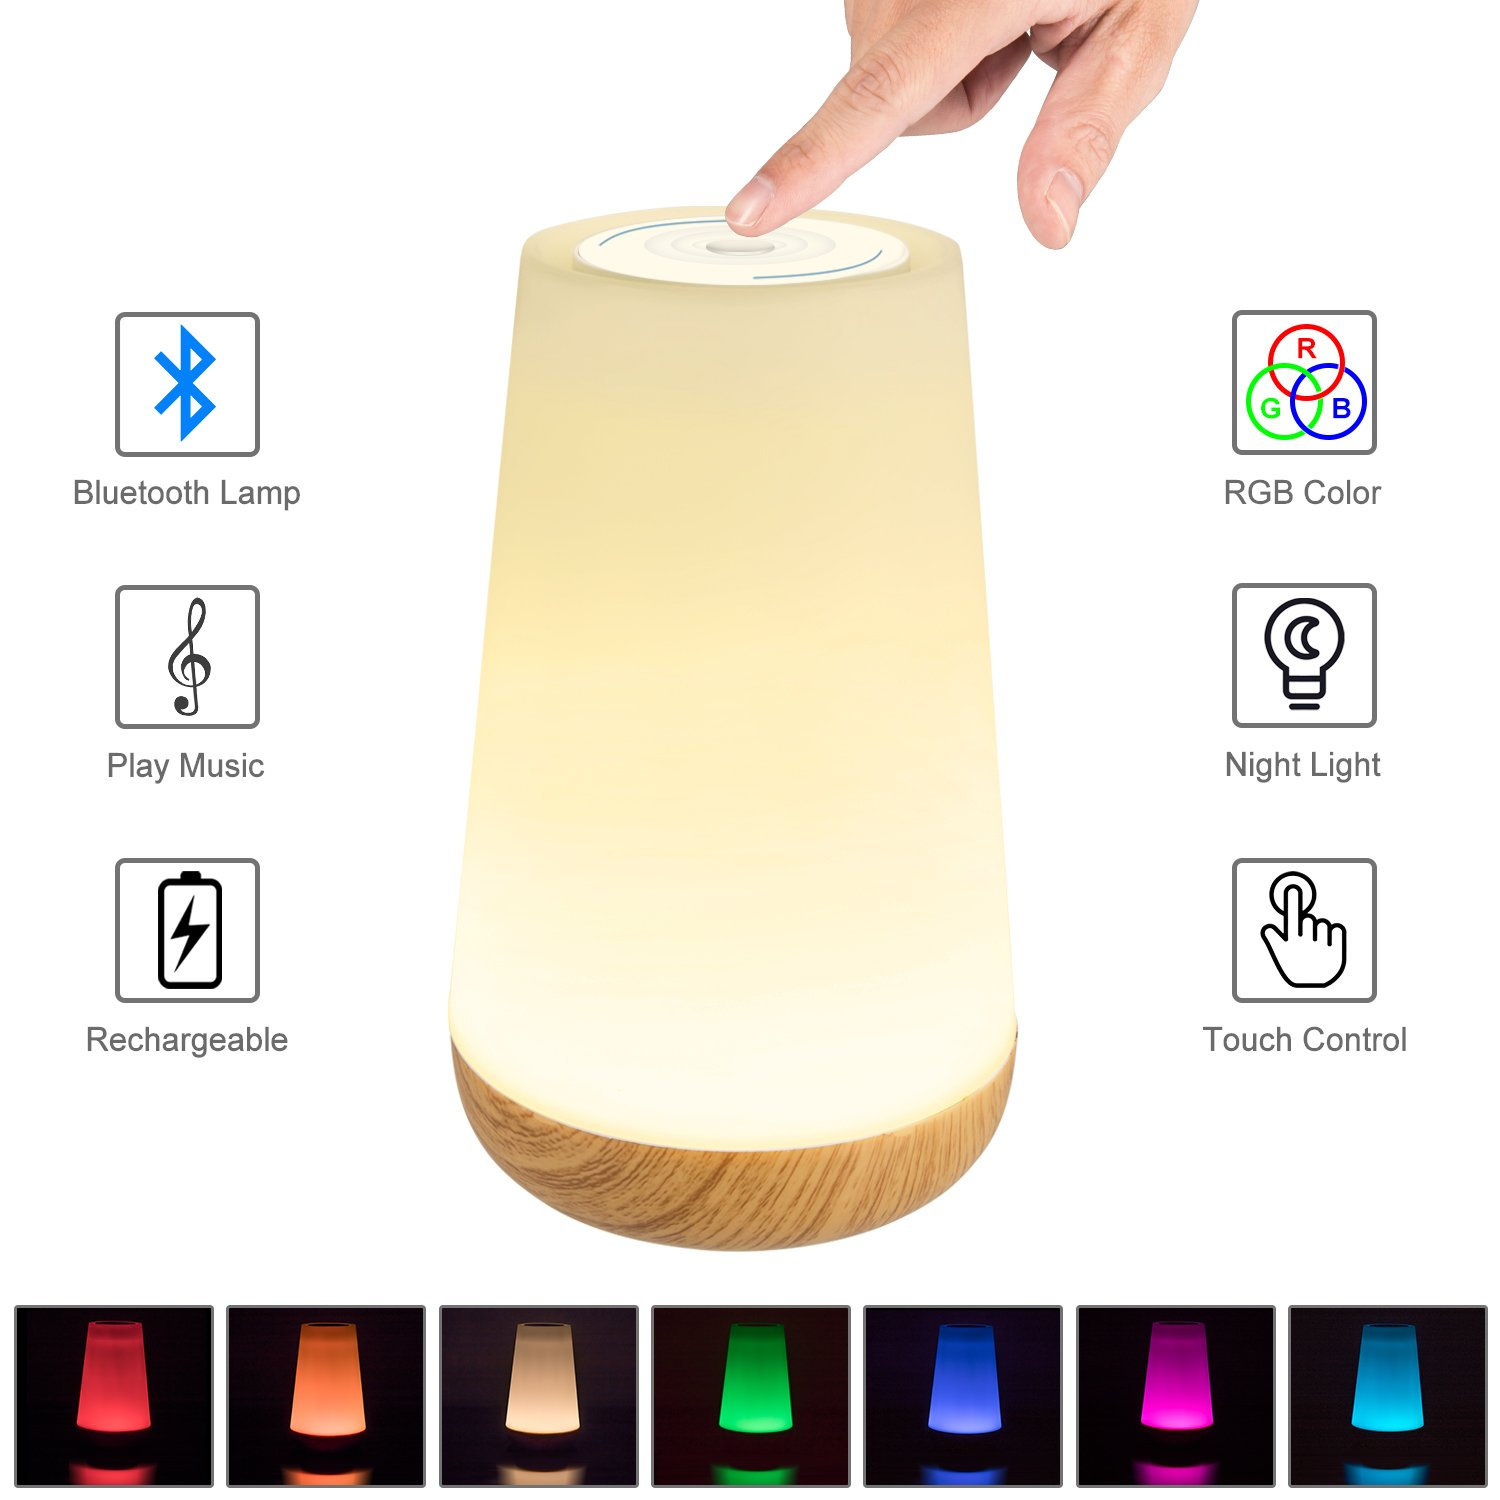 Bluetooth Speaker Light, Touch Control Bedside Lamp, YaFex Portable Touch Control Table Lamp, Dimmable RGB Multi-Color Changing Night Light for Bedroom [Upgraded Version]